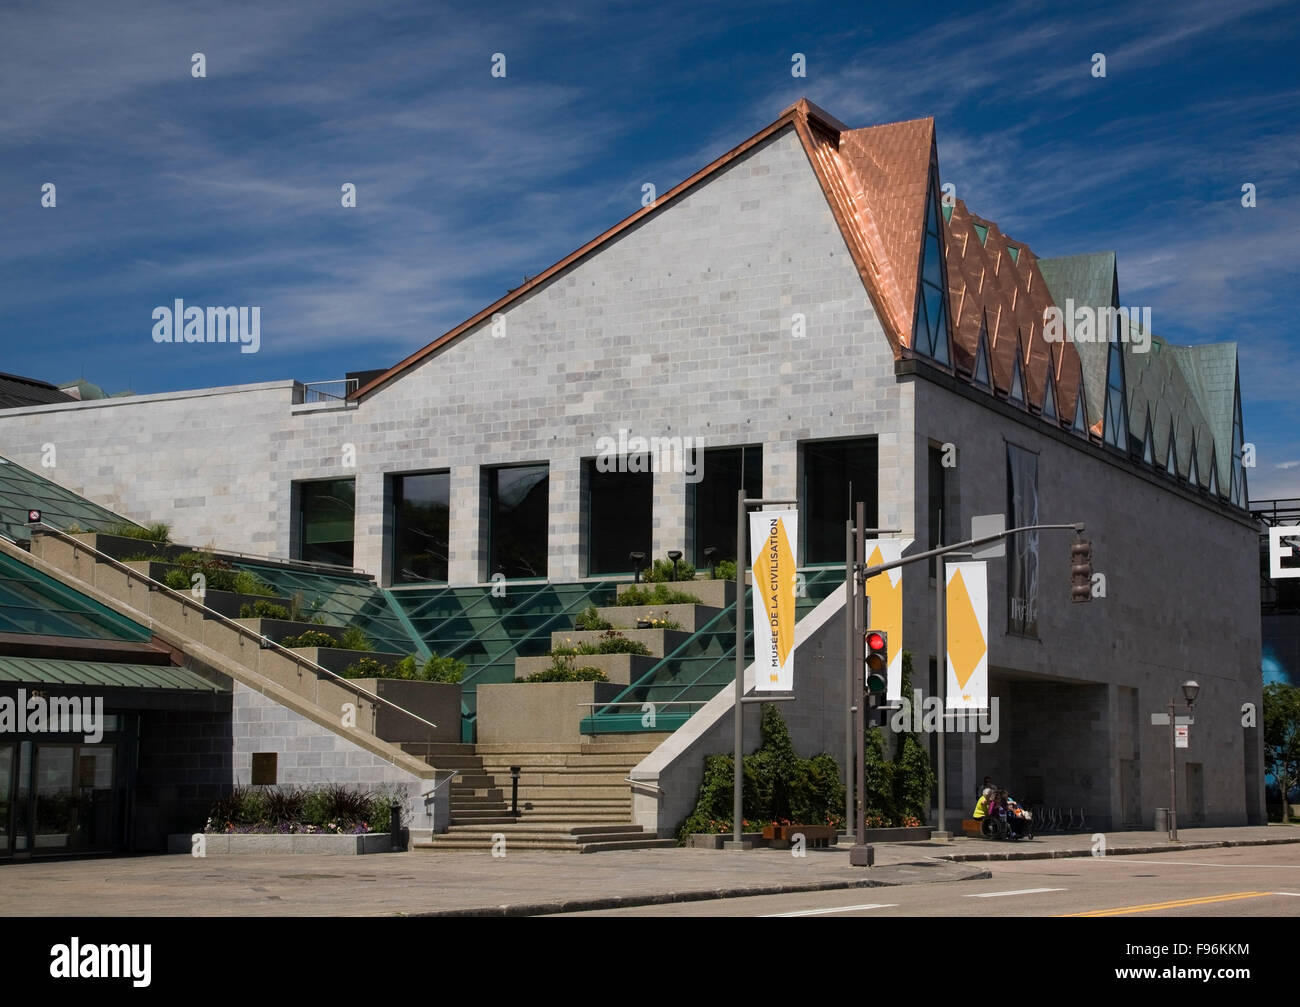 Musee de la Civilisation building in the Lower Town area of Old Quebec, Quebec, Canada - Stock Image